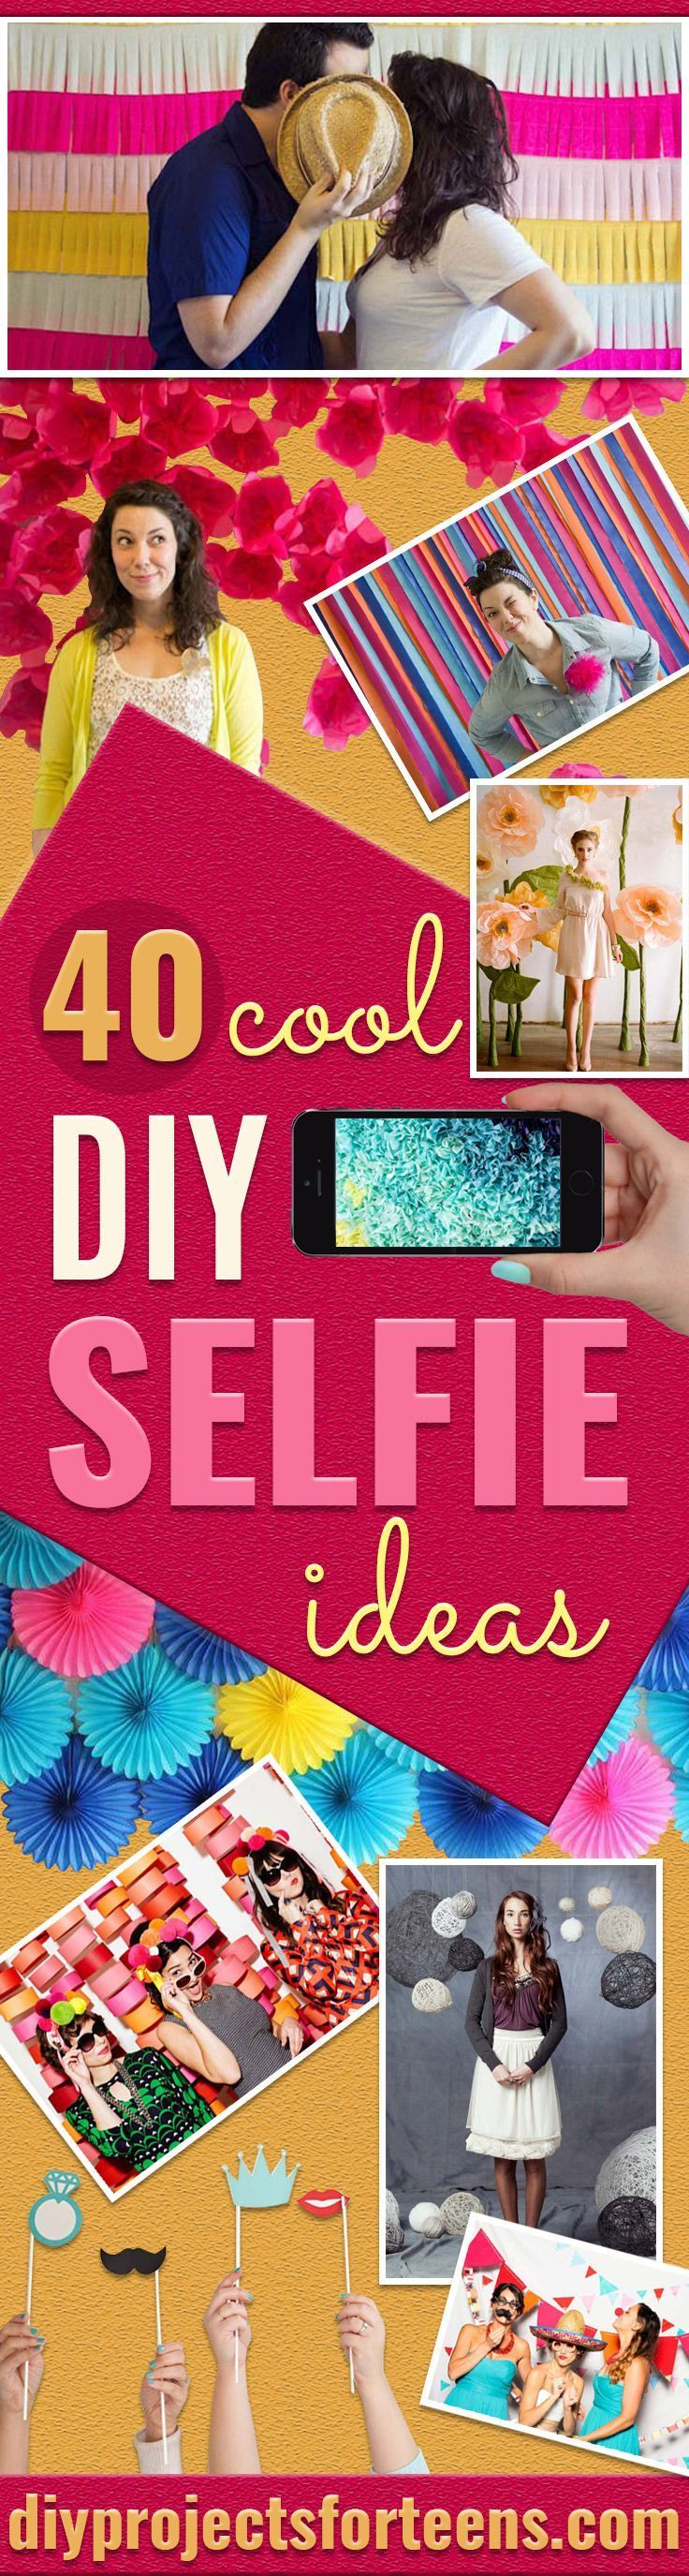 Best 149 DIY Fotos und Bilderrahmen images on Pinterest | Coole ...